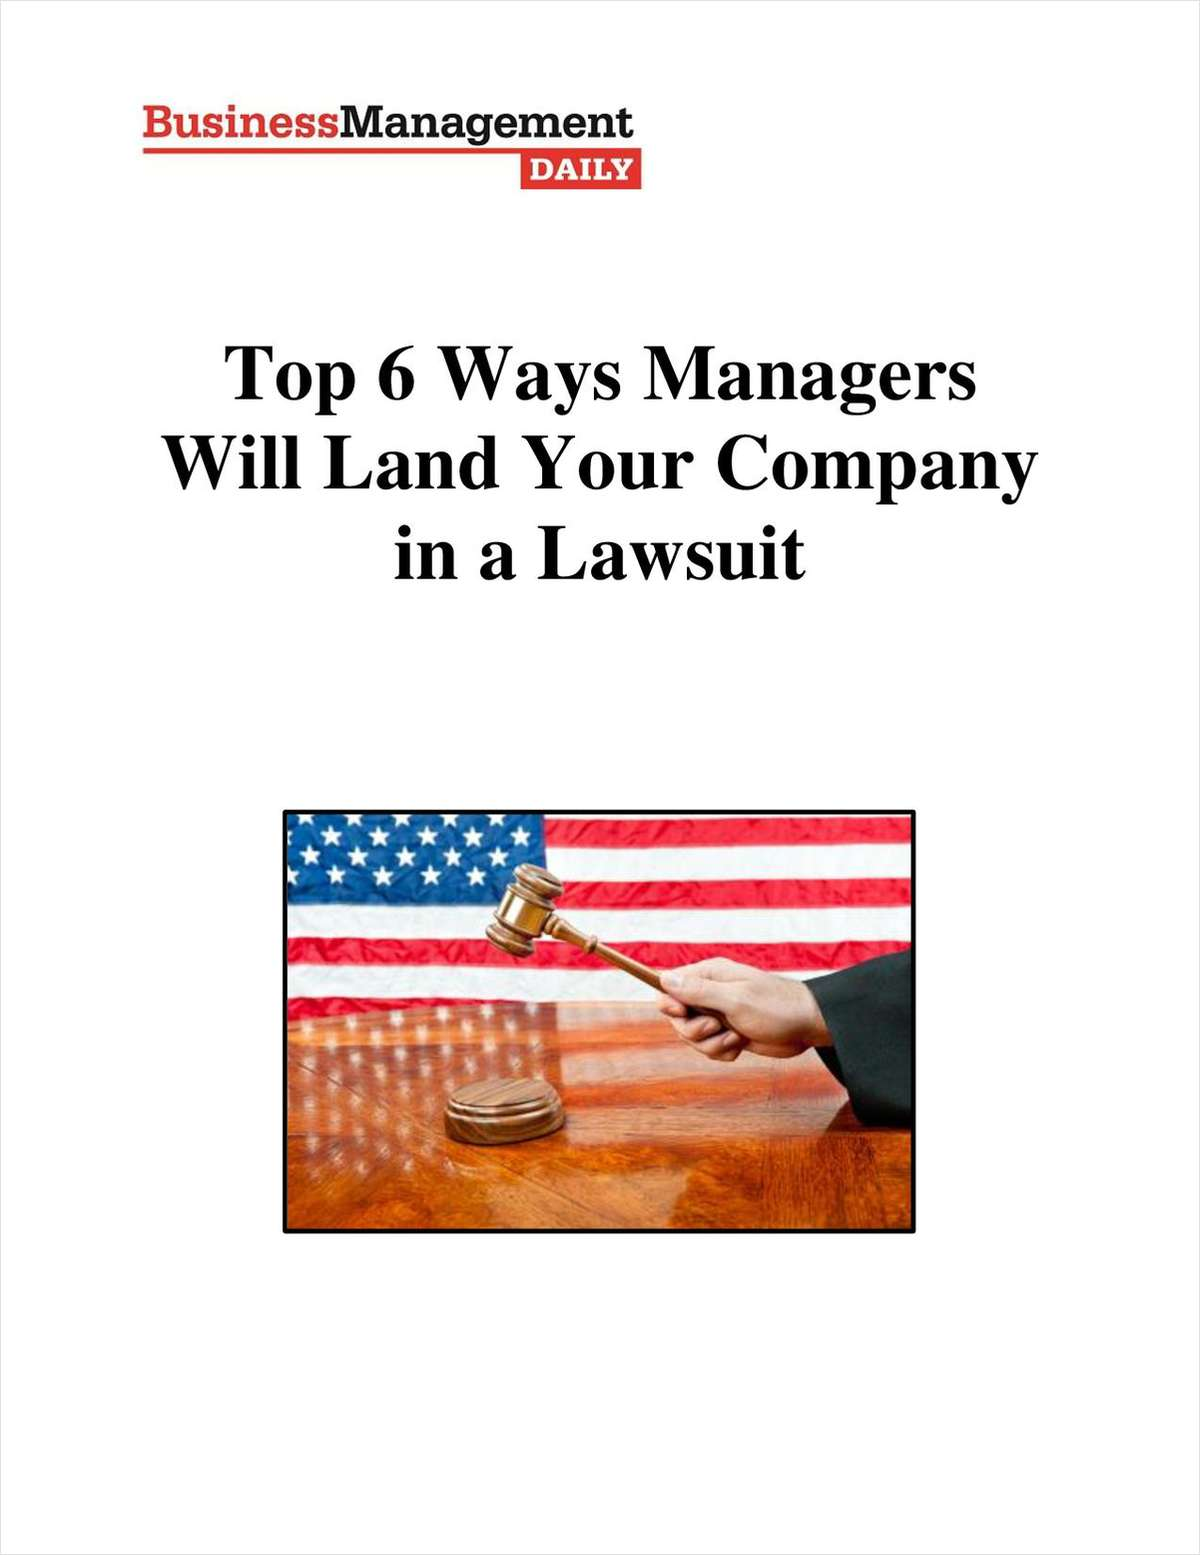 Top 6 Ways Managers Will Land Your Company in a Lawsuit